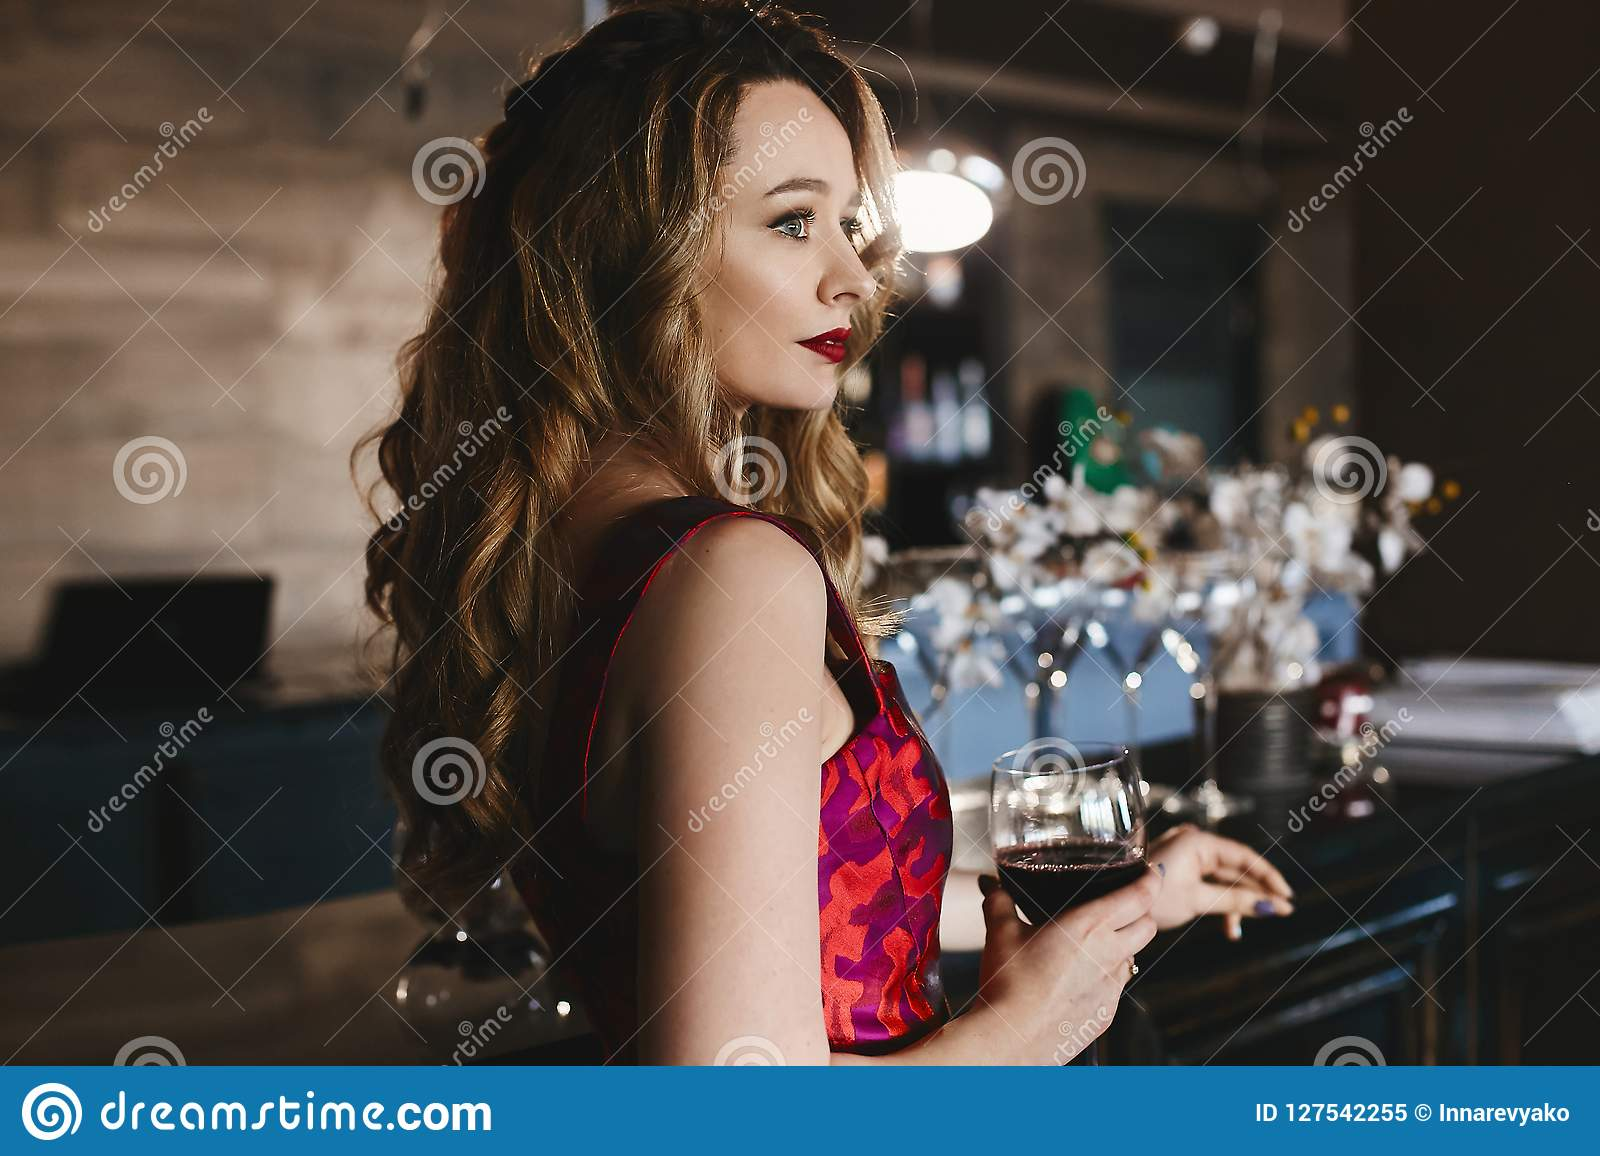 Fashionable blonde model girl with red lips and with curly hairstyle, in the red-pink dress stands at the bar with